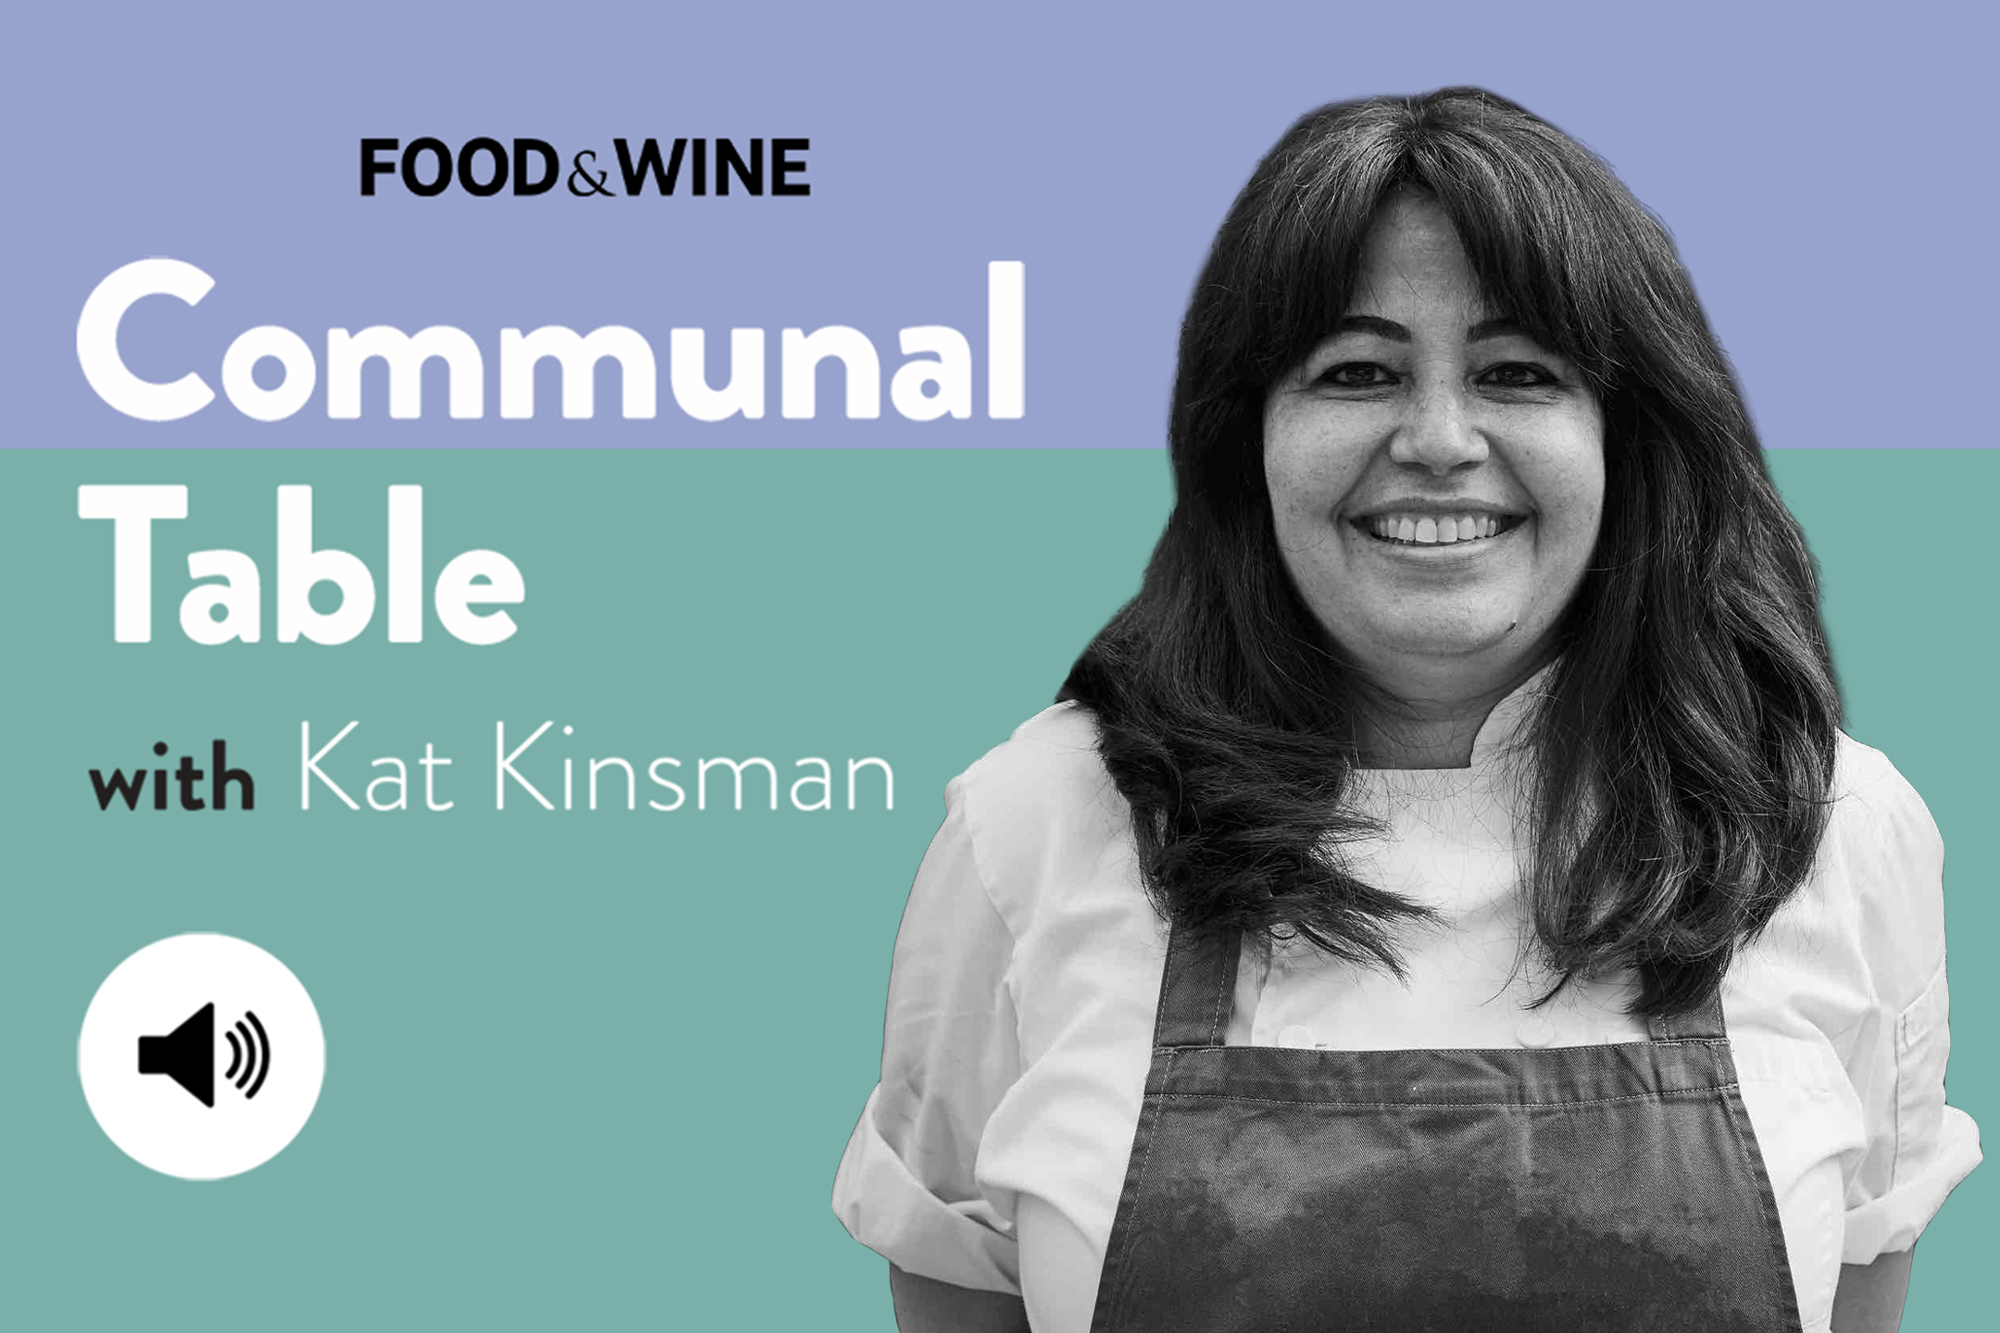 Communal Table with Kat Kinsman featuring Romy Gill